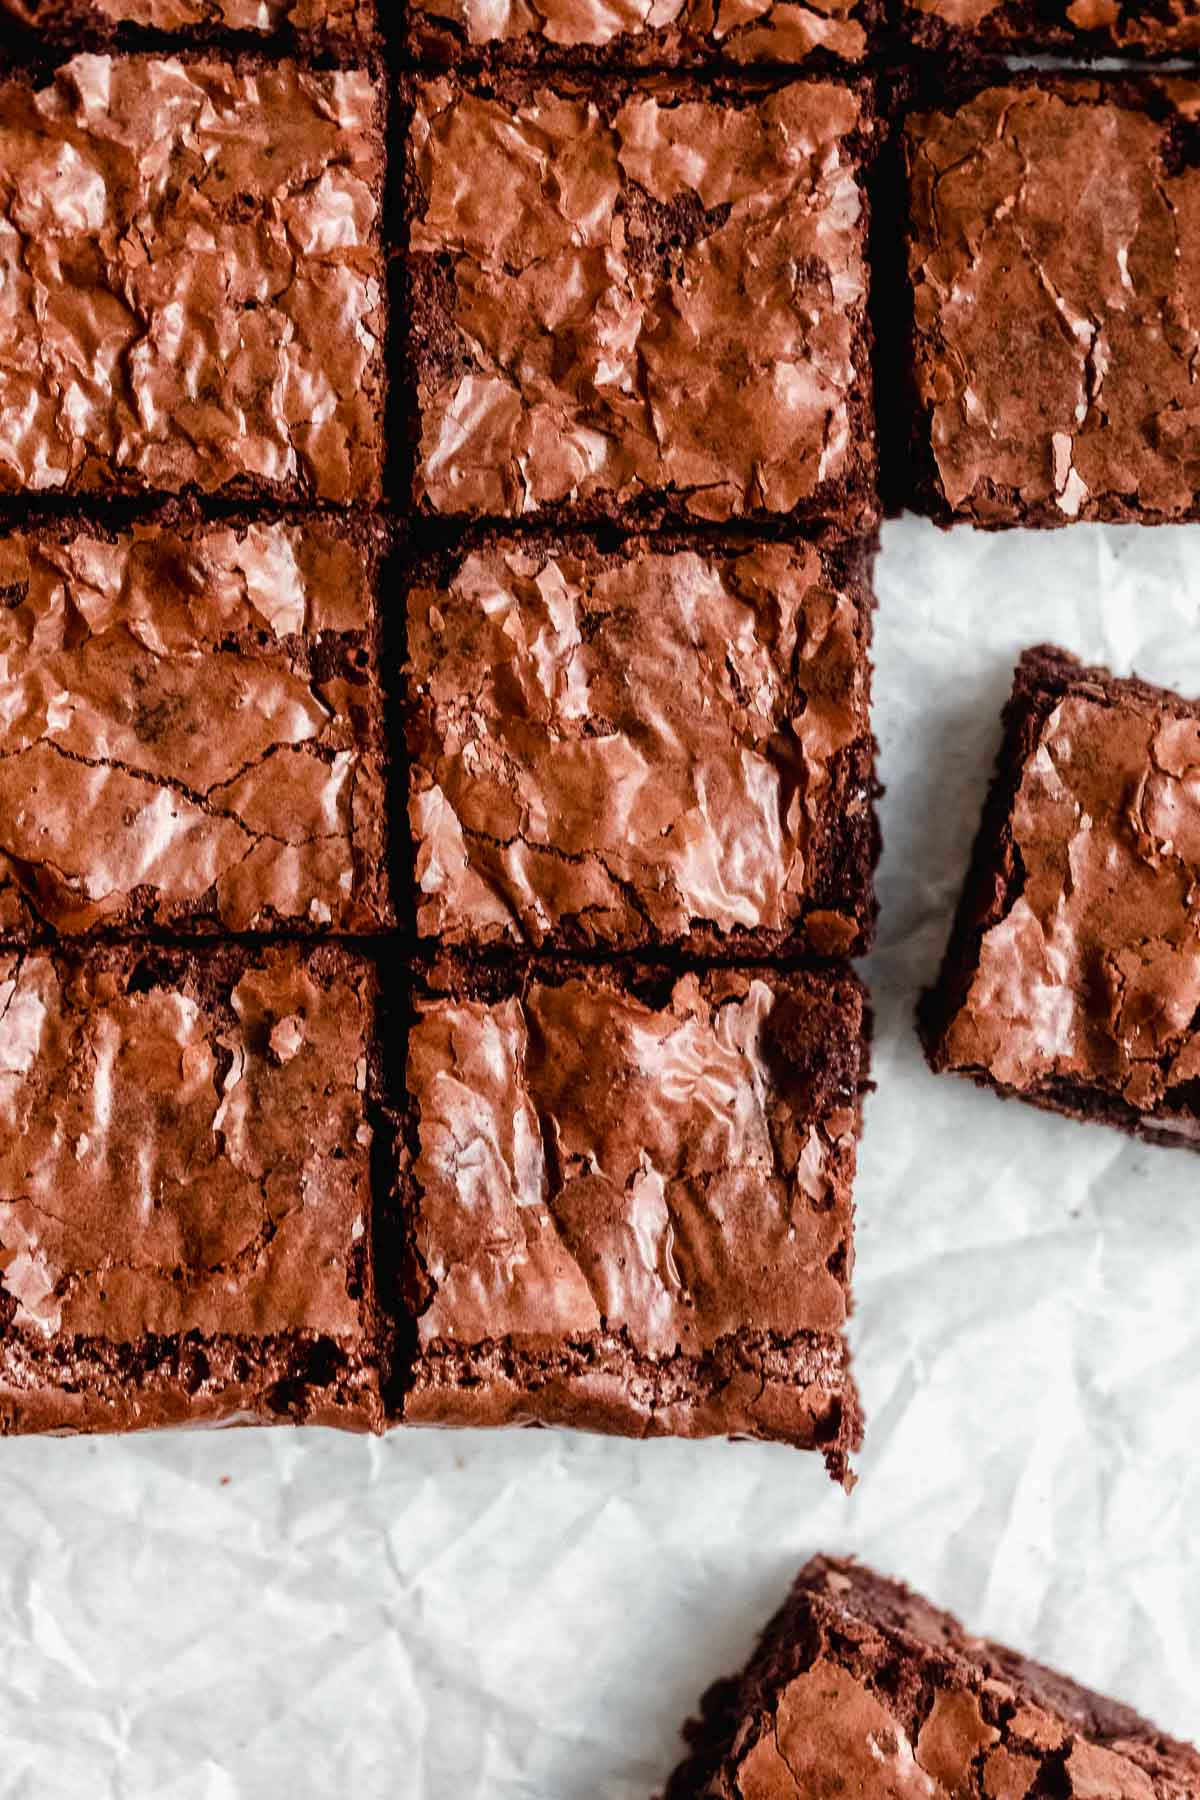 final brownies cut into even squares on parchment paper